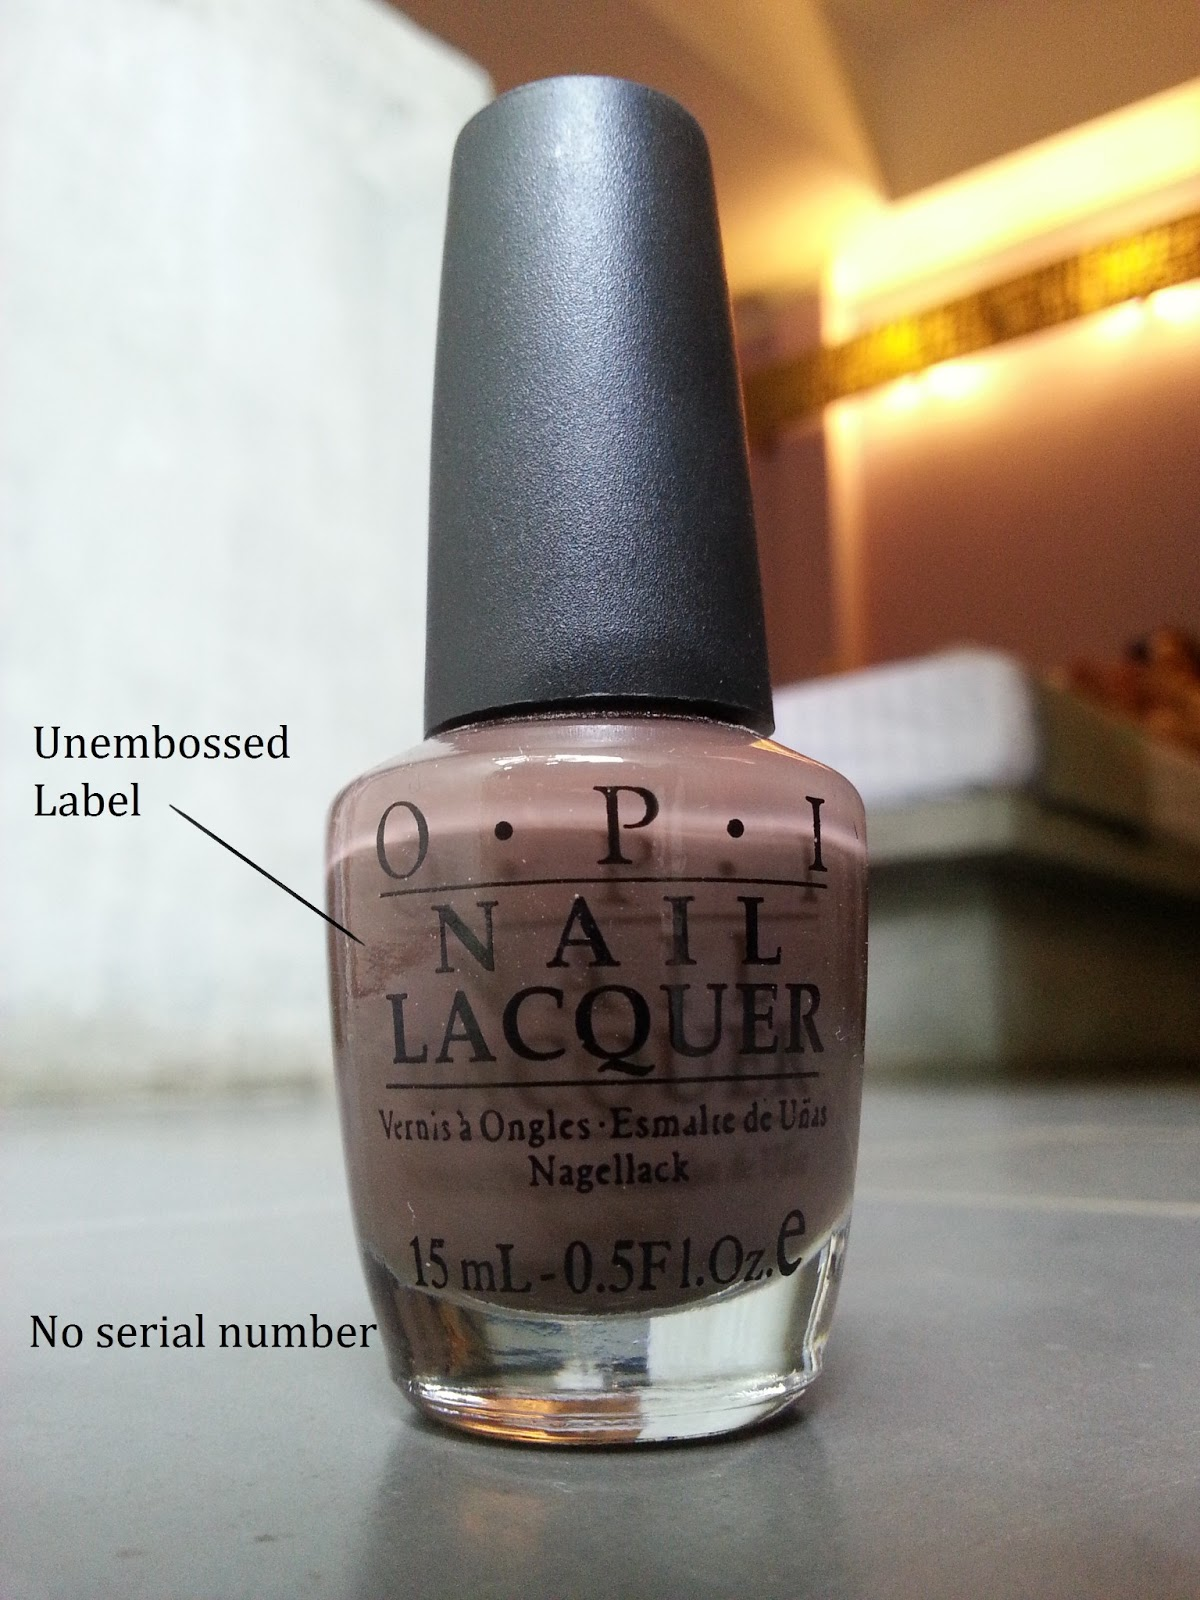 Sparkle and Rose: How To Spot a Faux-PI (fake OPI) nail polish